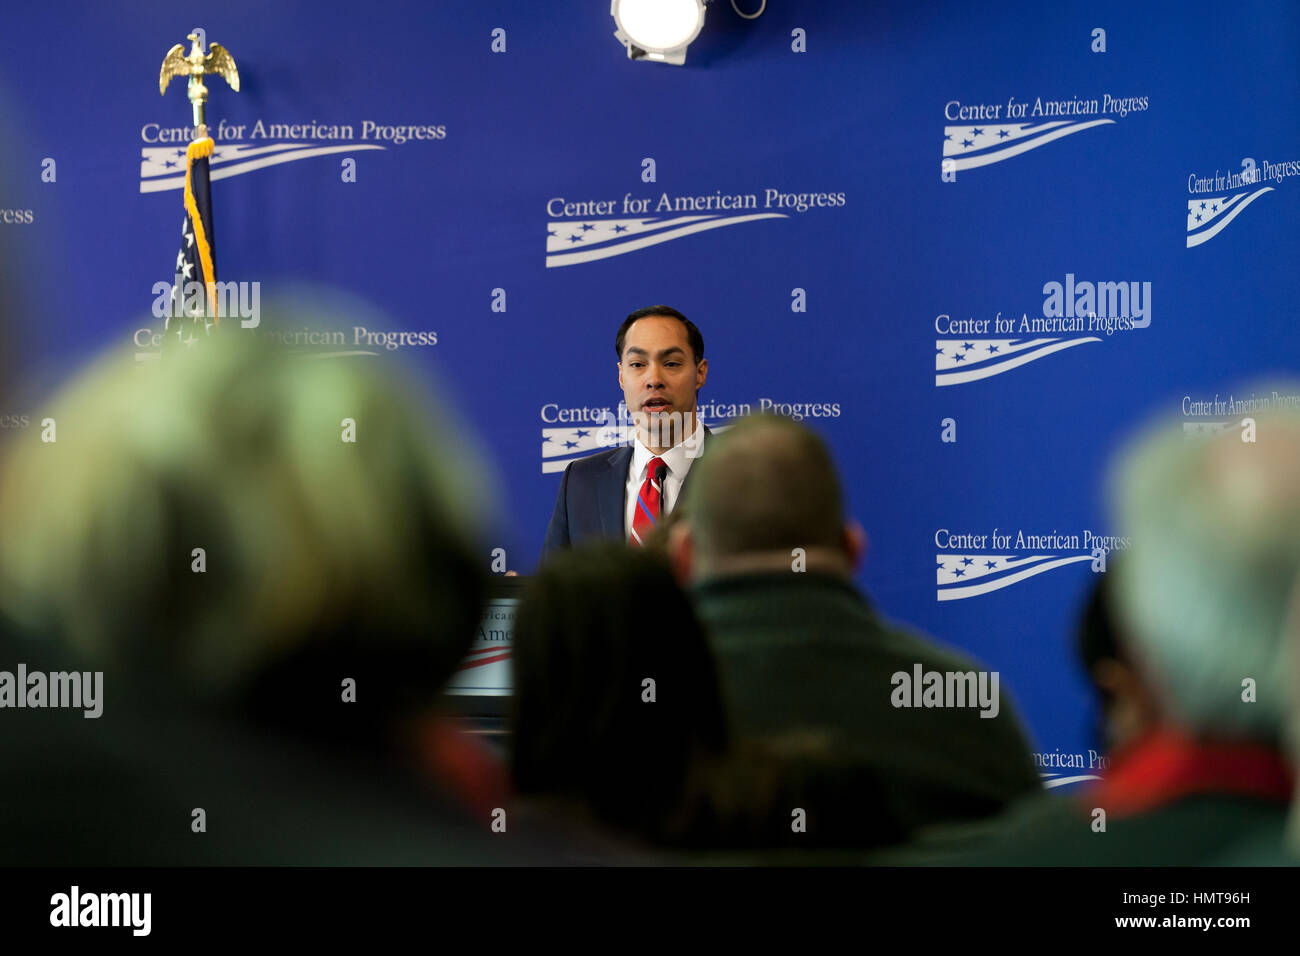 Julian Castro, Secretary of US Housing and Urban Development, 2014 to 2017. Stock Photo